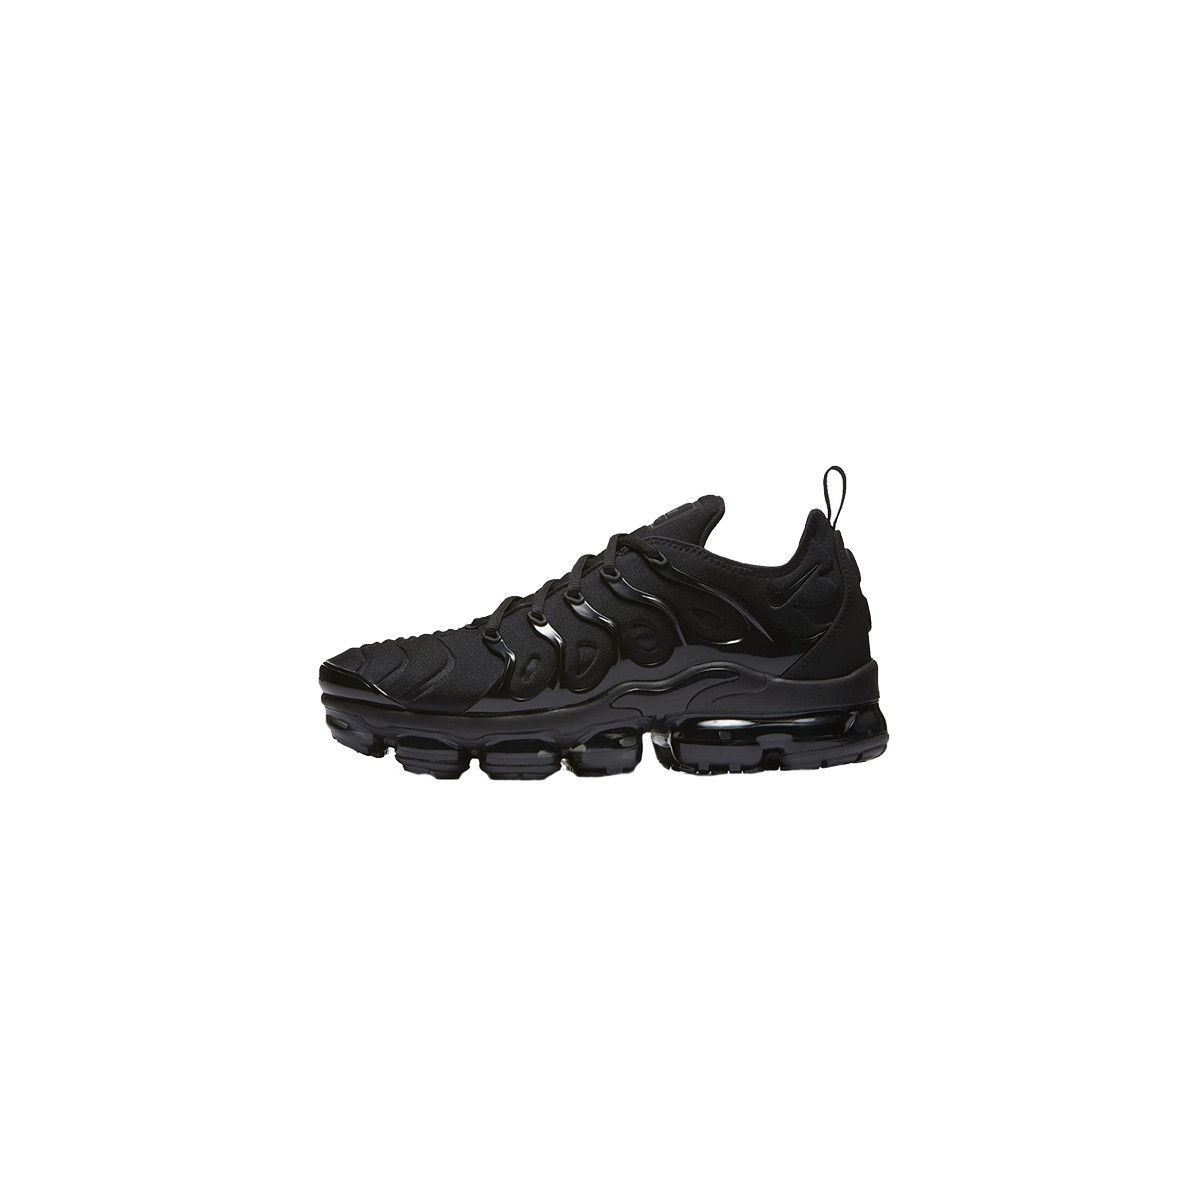 Basket Nike Air Vapormax Plus Ref. 924453 004 Taille